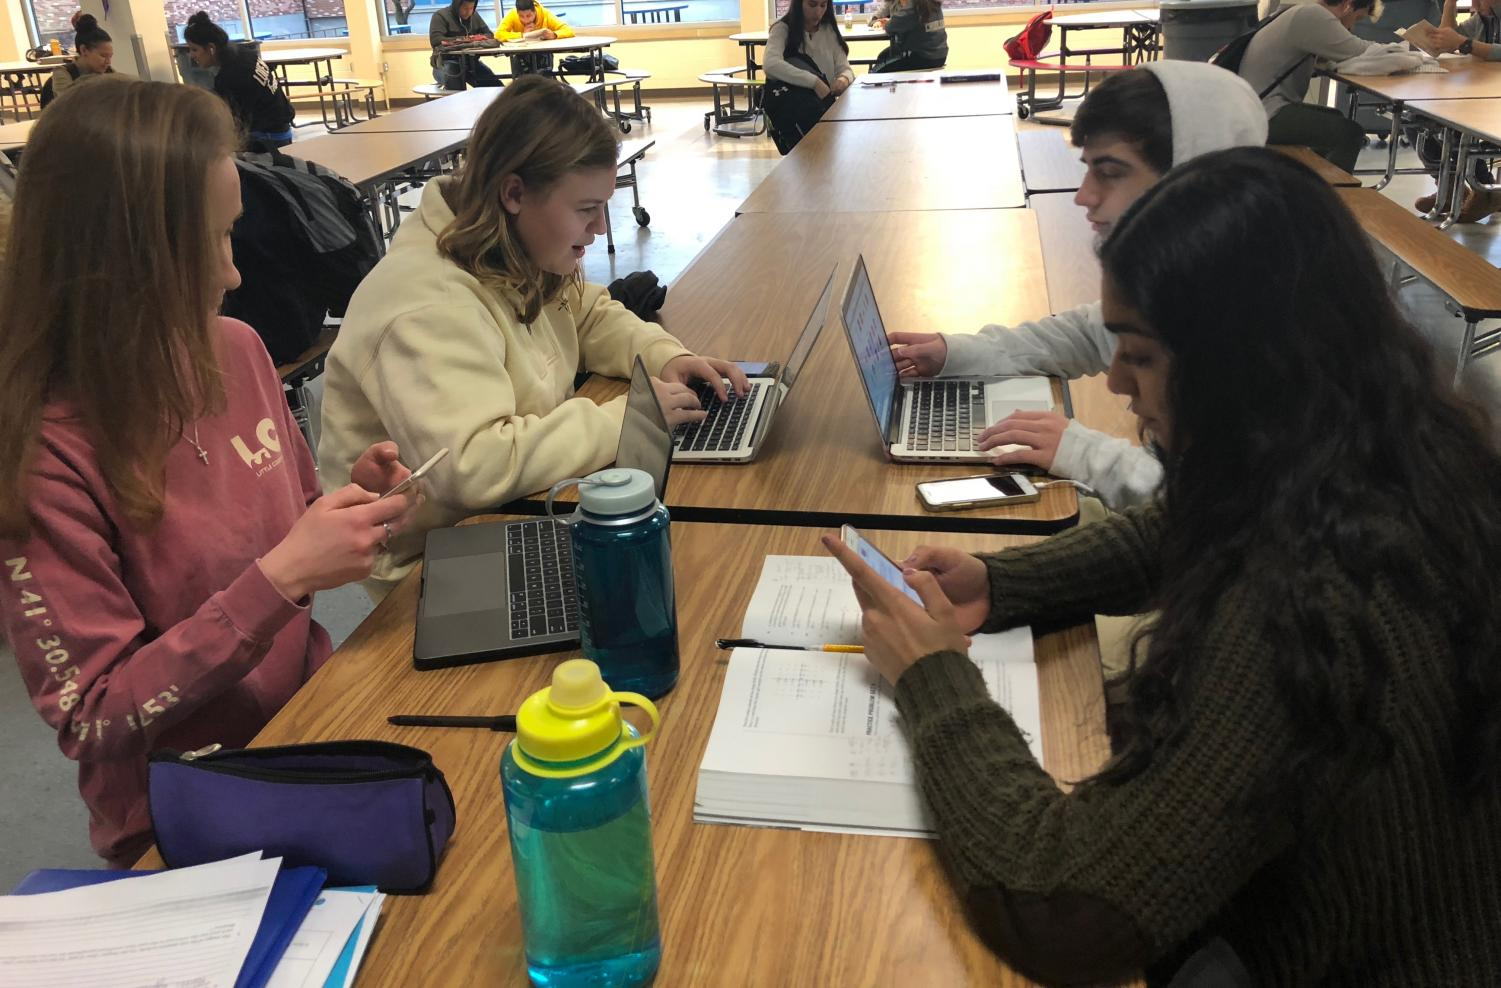 A group of students use DPS-OpenWiFi on their personal devices during their study hall.